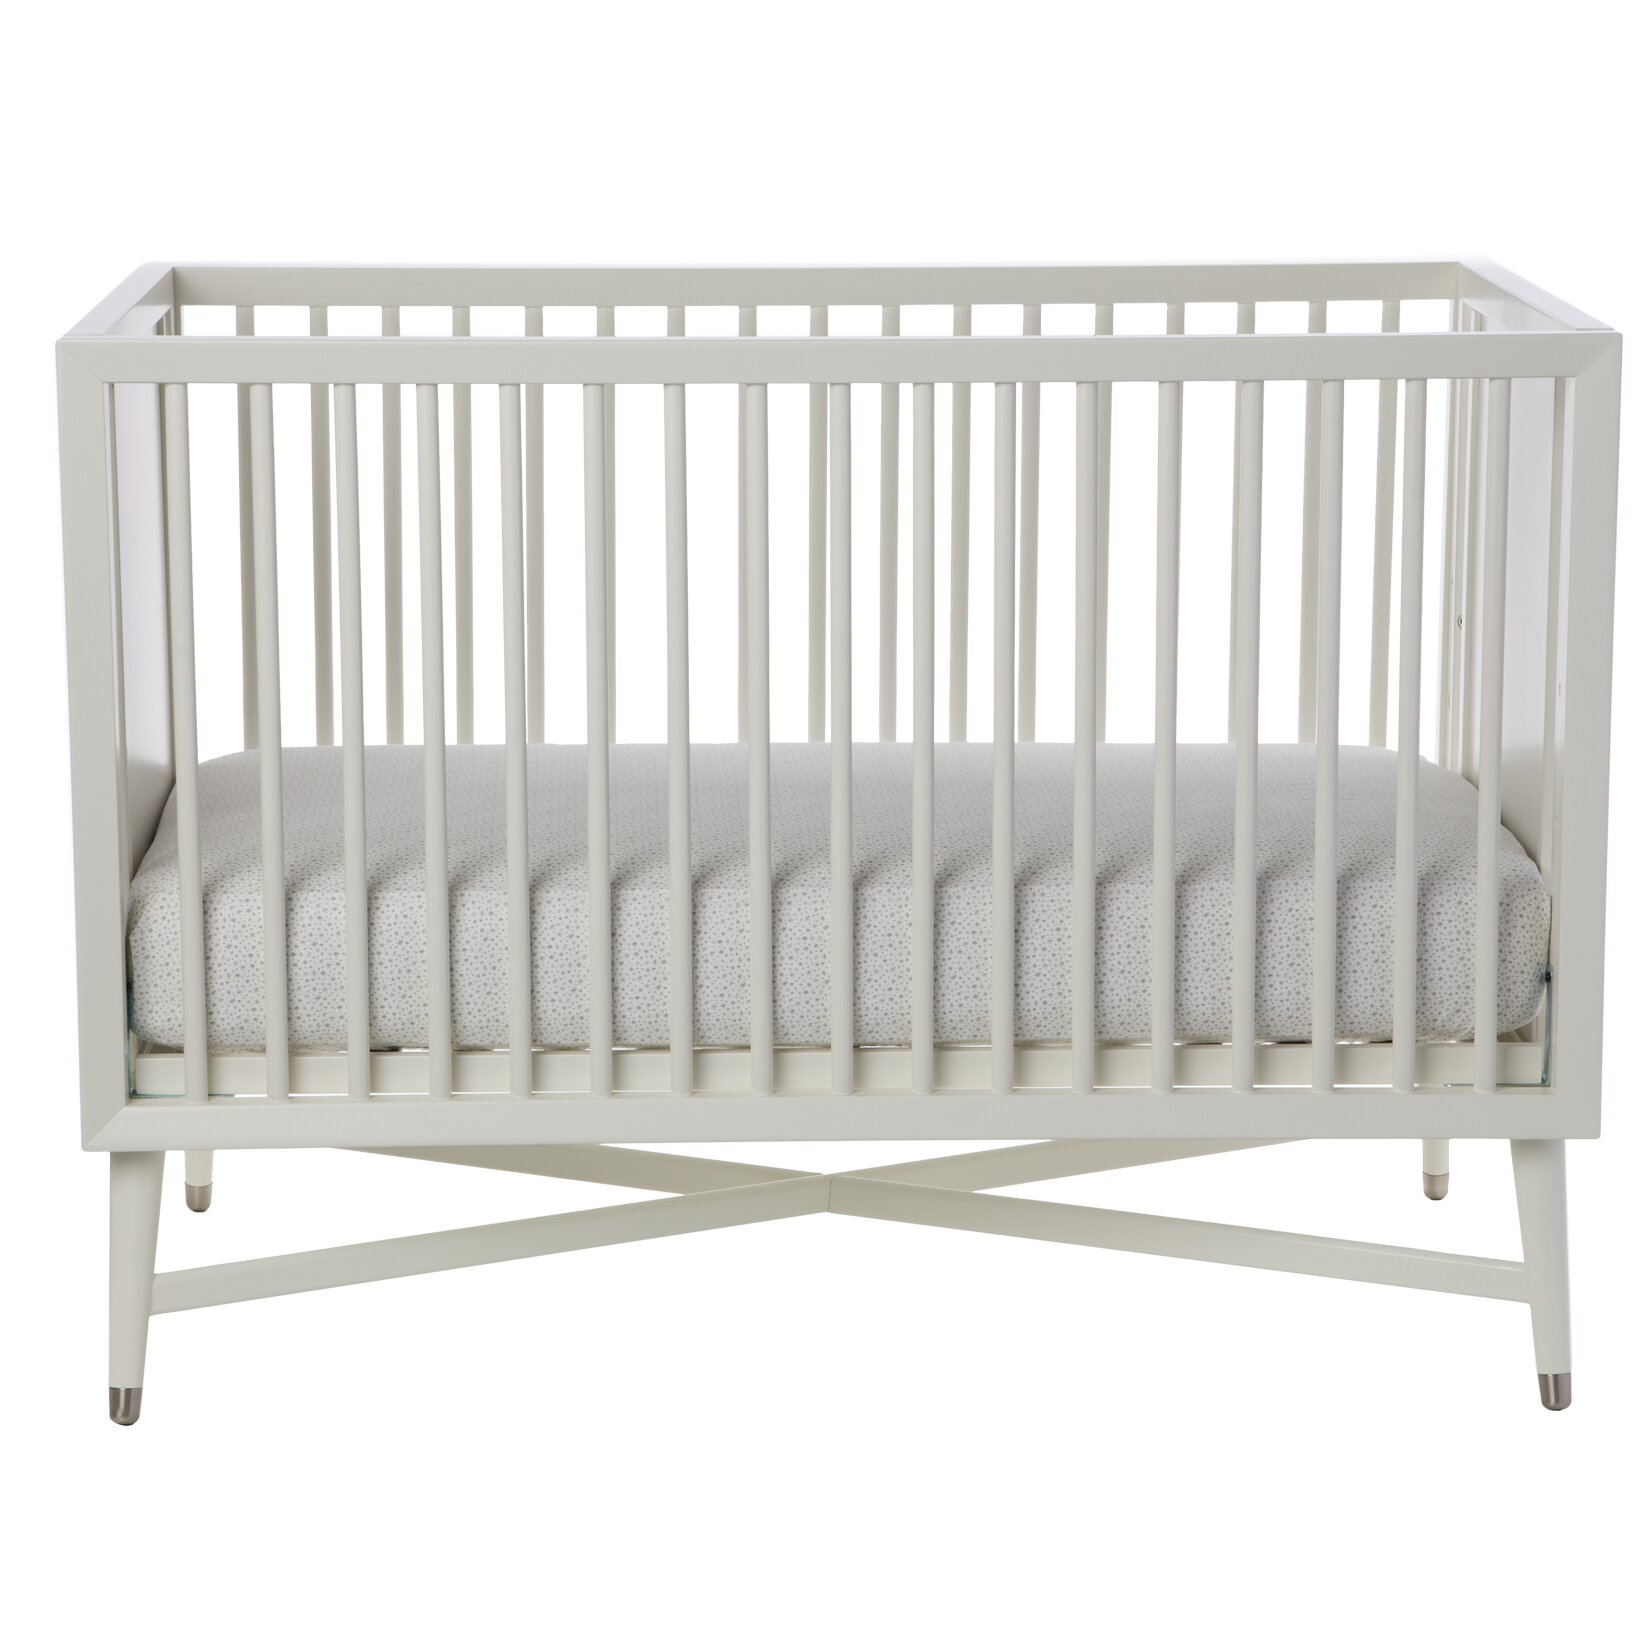 dwellstudio mid century 3 in 1 convertible crib in white